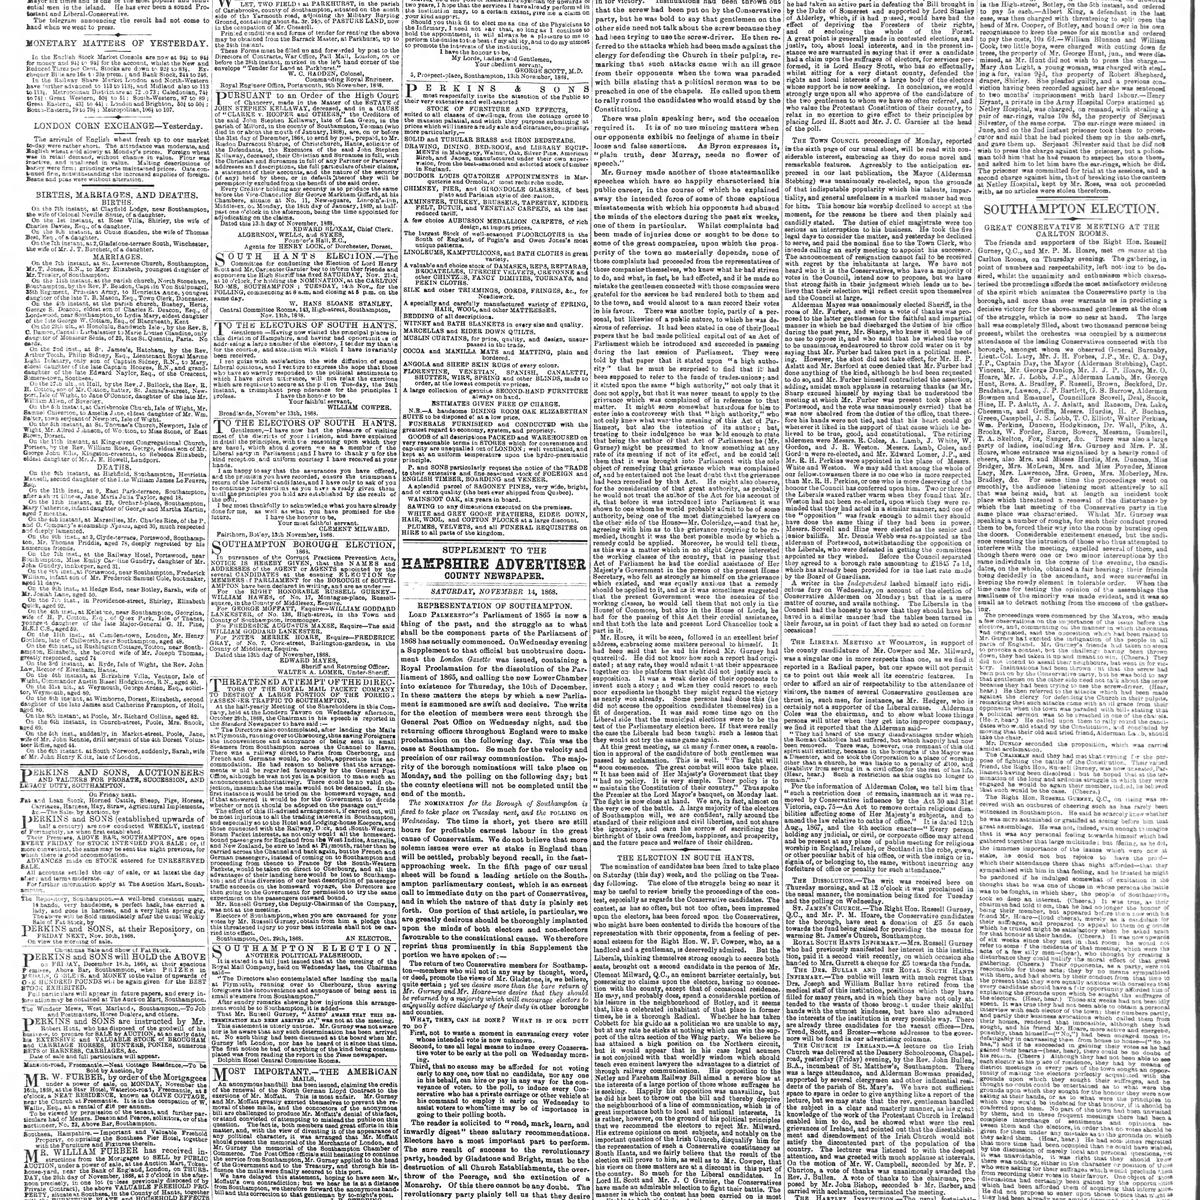 The Hampshire Advertiser, 1868-11-14, page 2